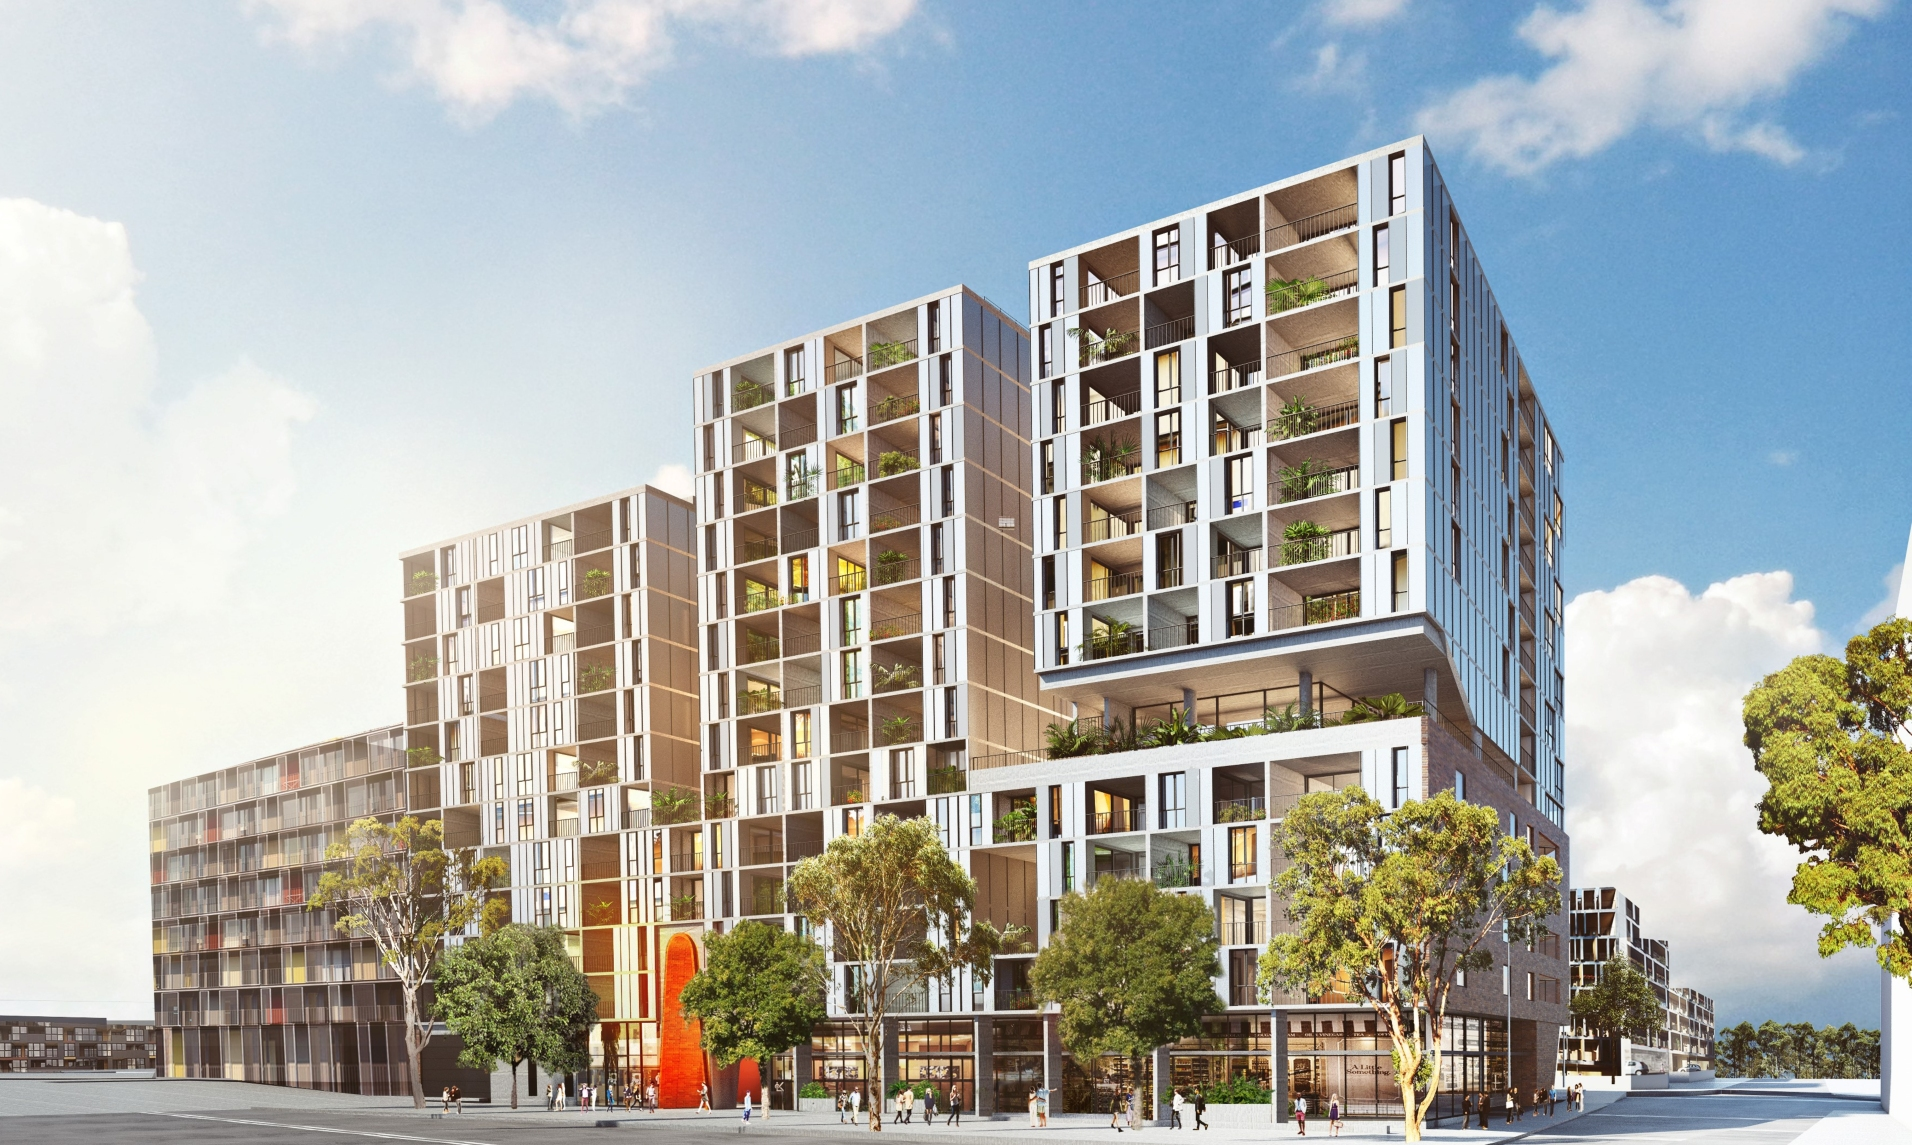 106 – 116 Epsom Rd Zetland – EQ Project